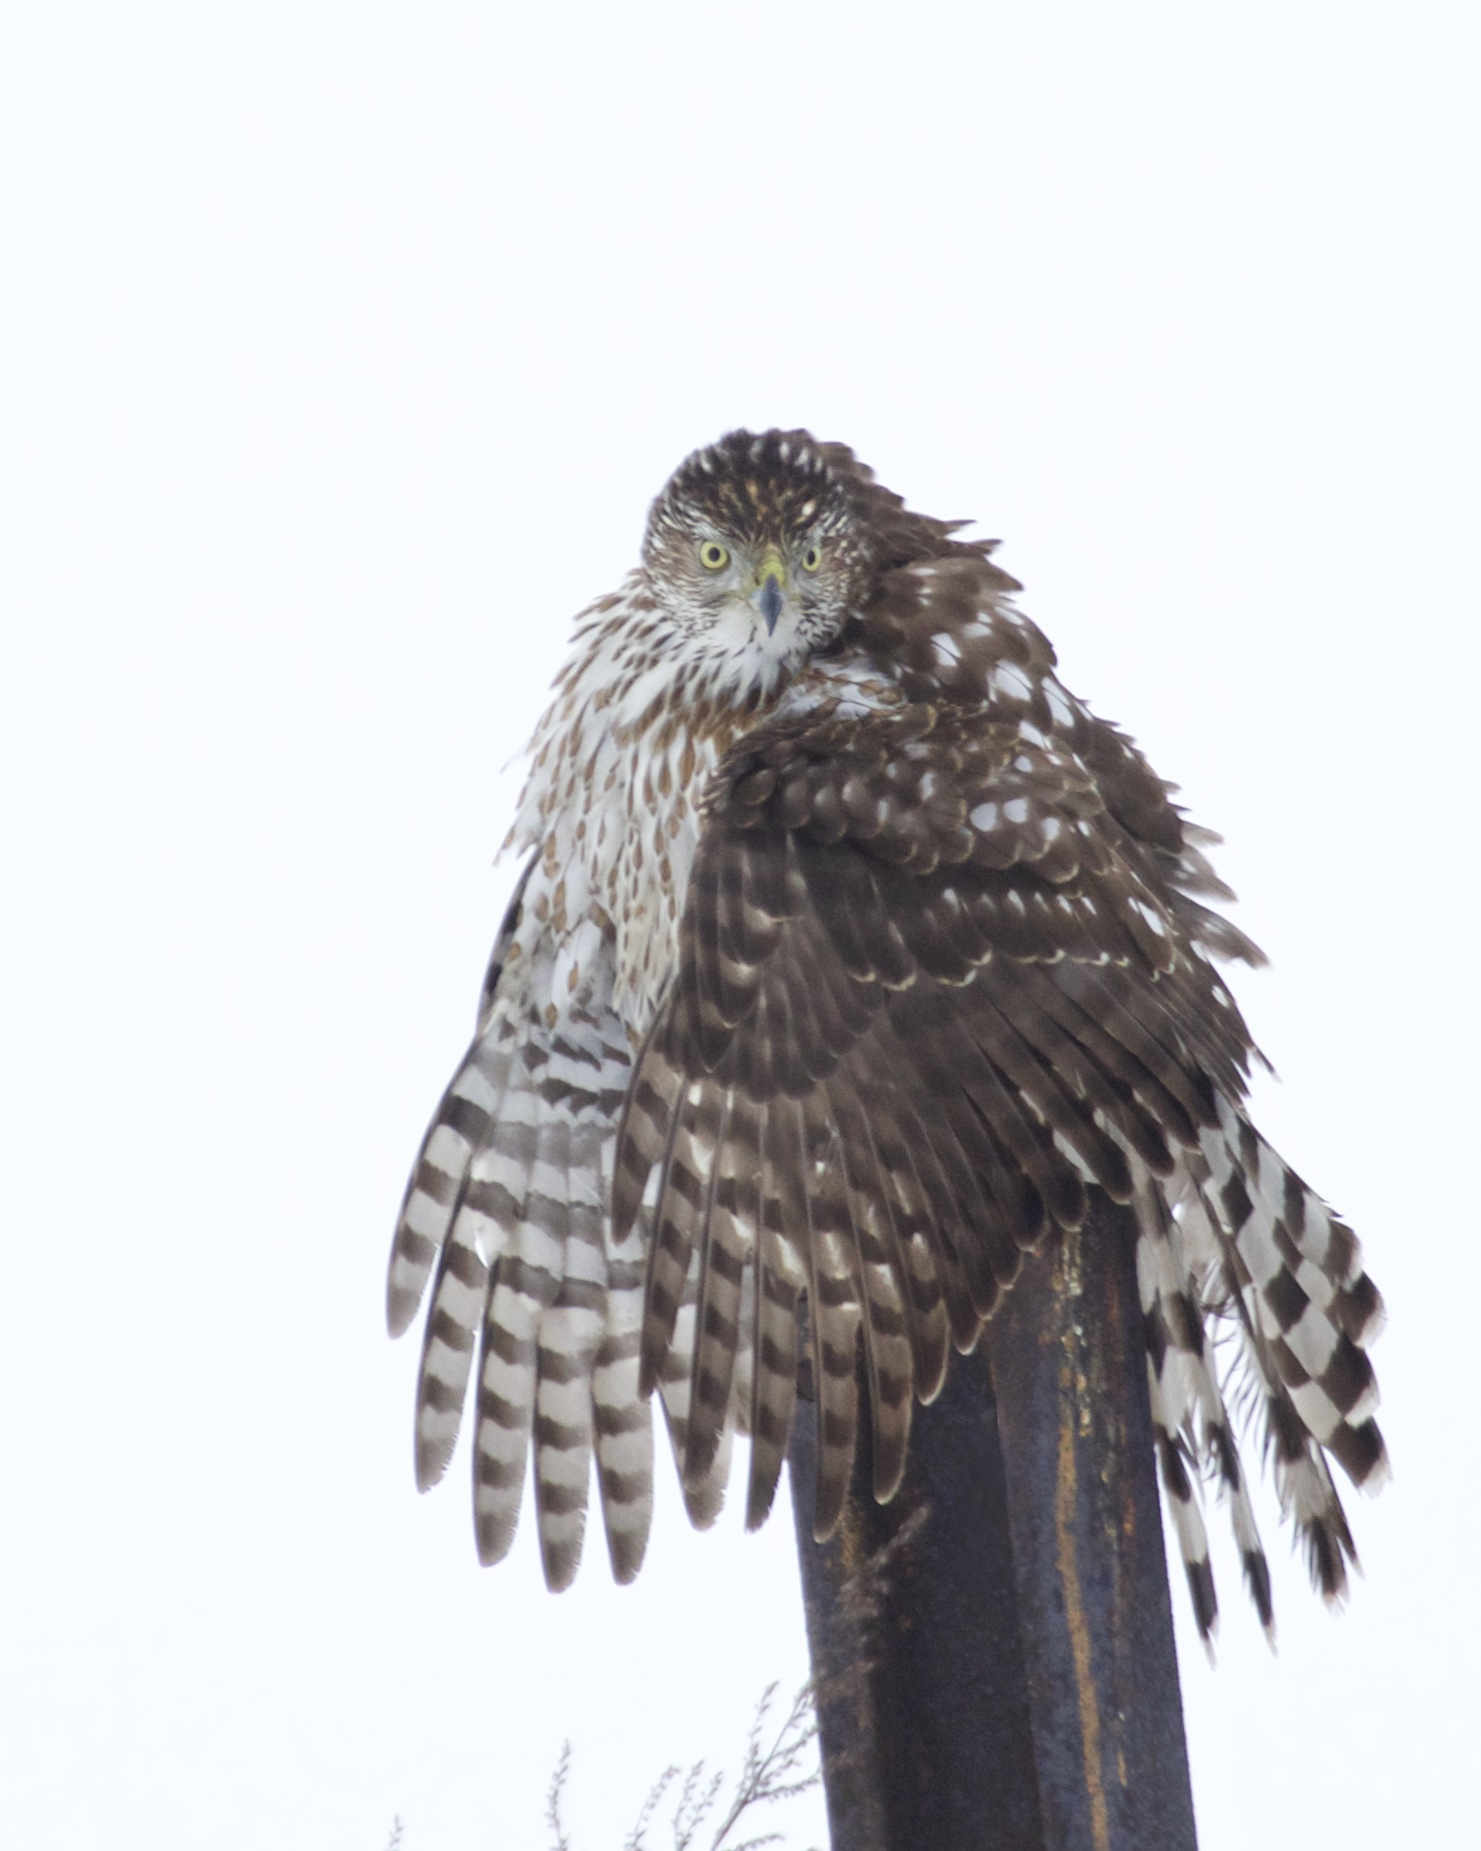 ~Cooper's Hawk at the Newburgh Waterfront, 1/24/15.~